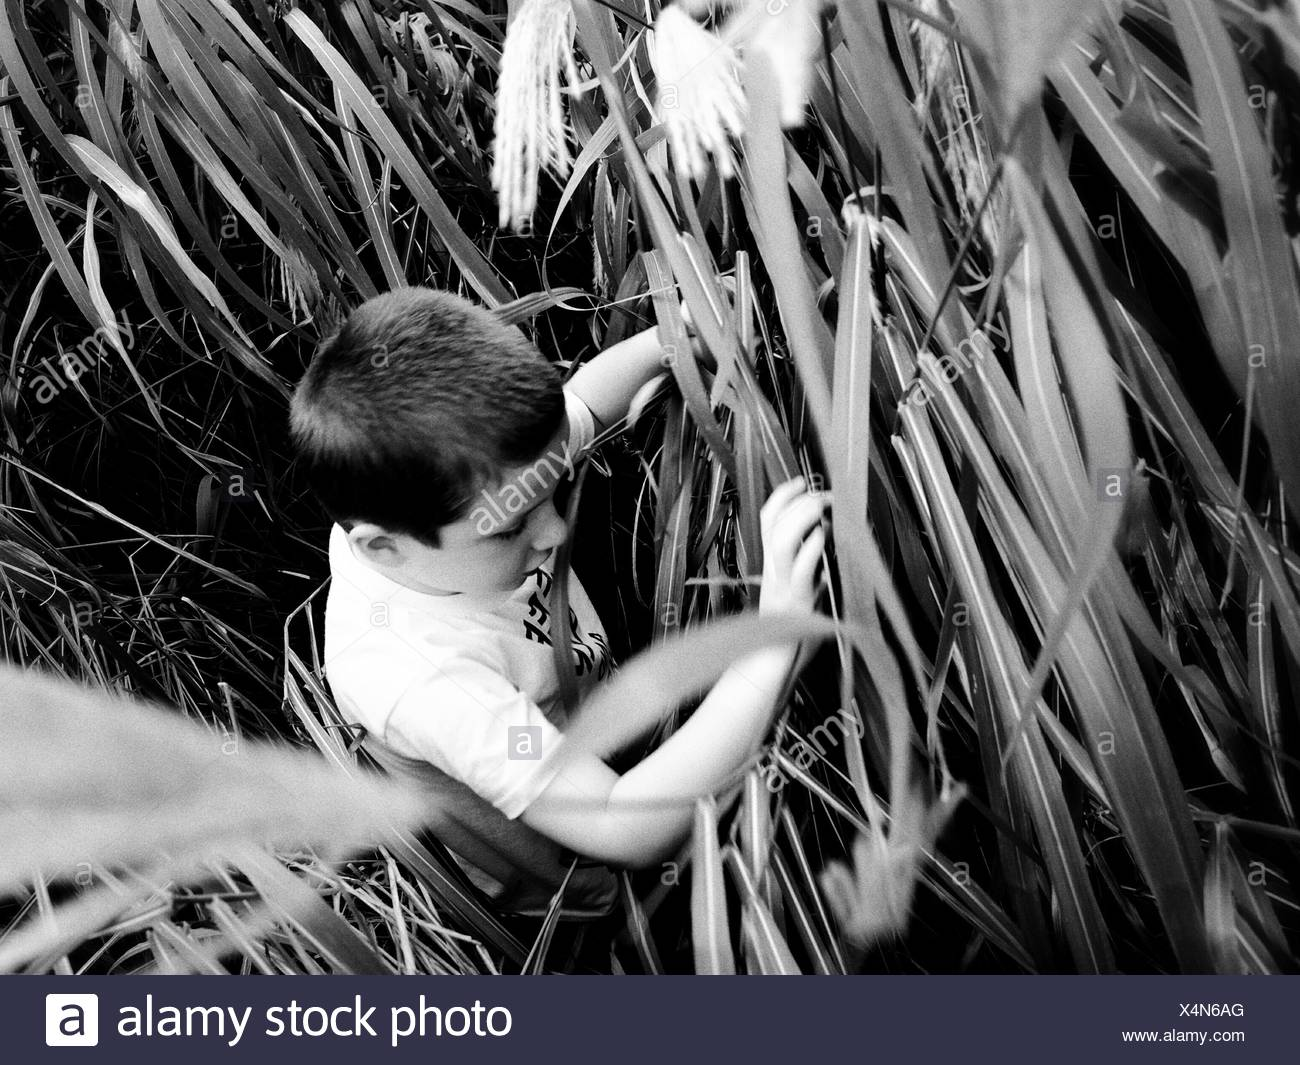 High Angle View Of Boy Walking In Grassy Field - Stock Image